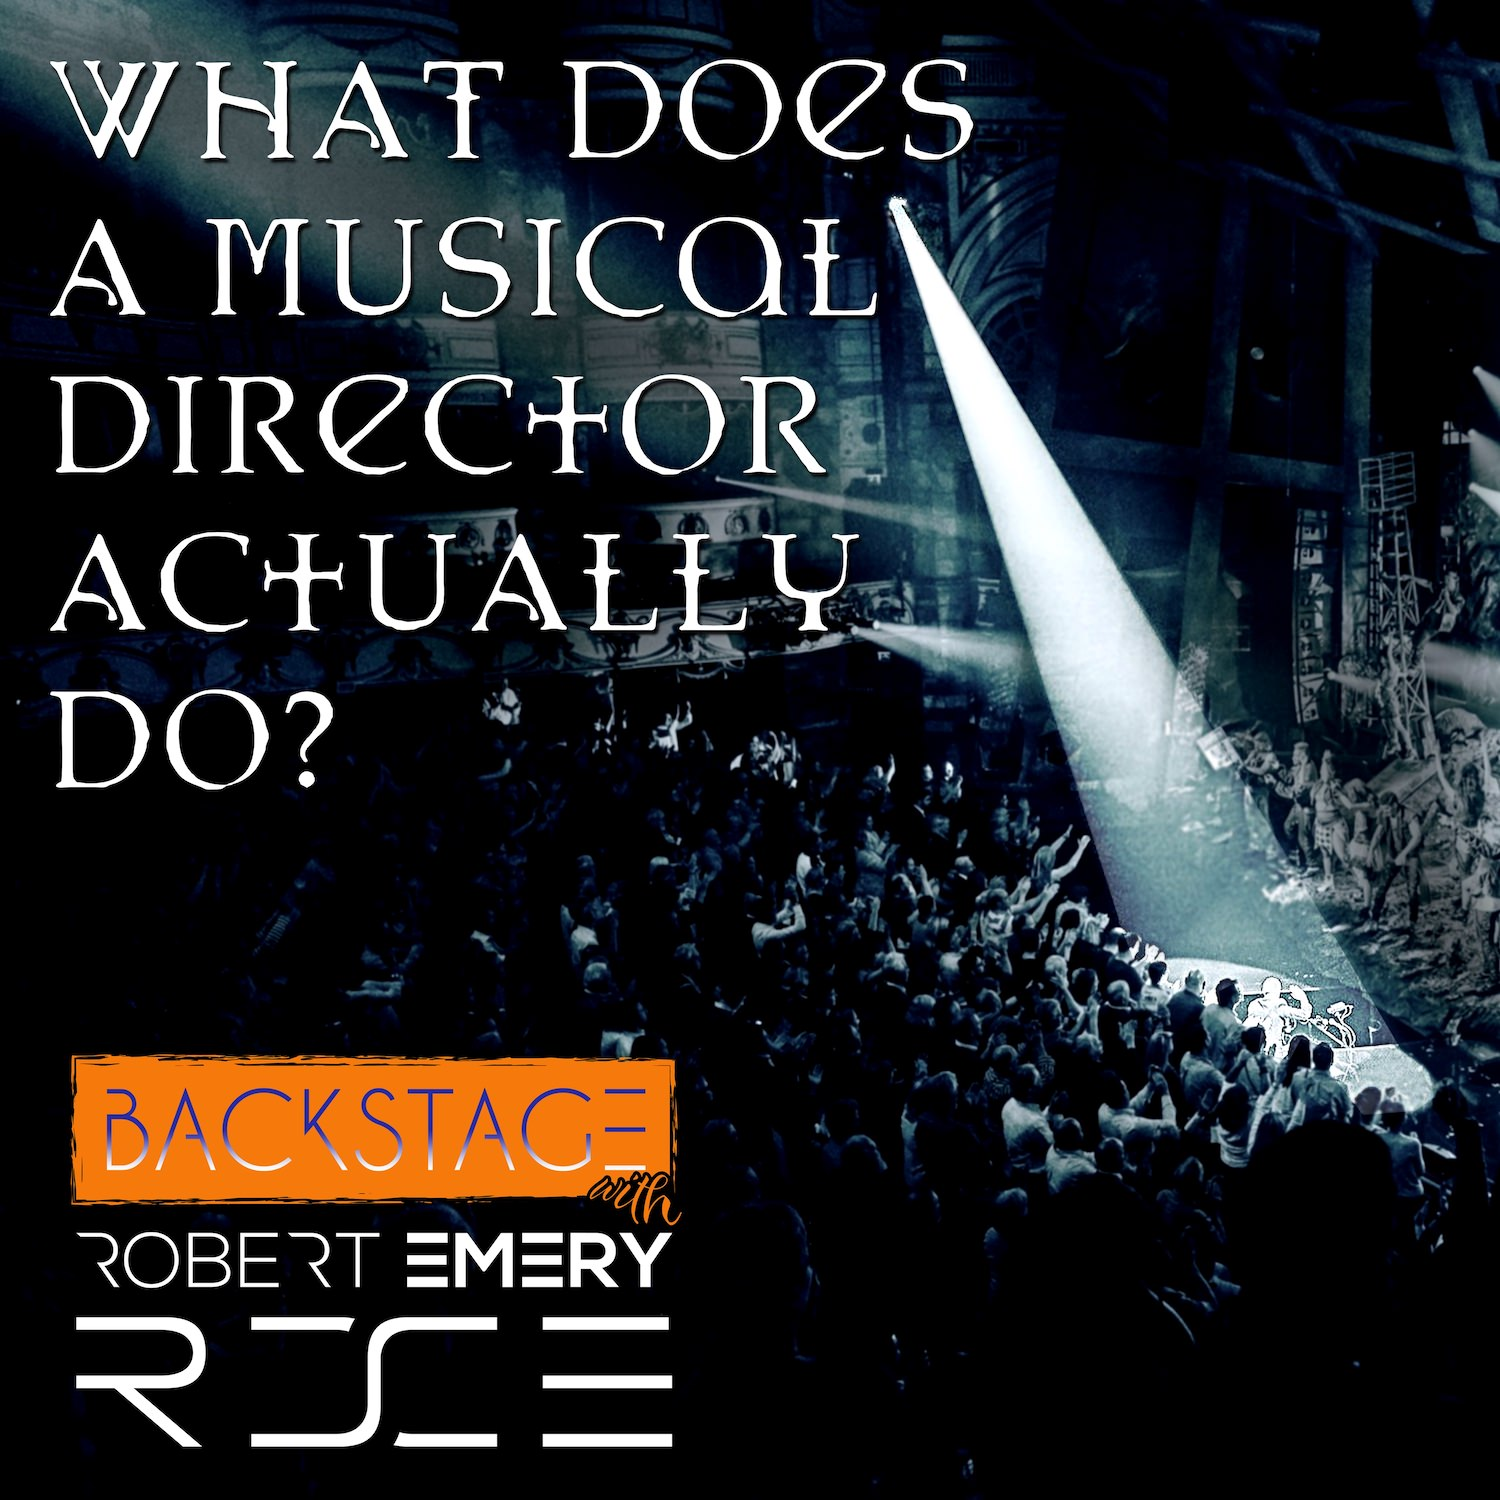 Robert Emery: What does a Musical Director actually do?